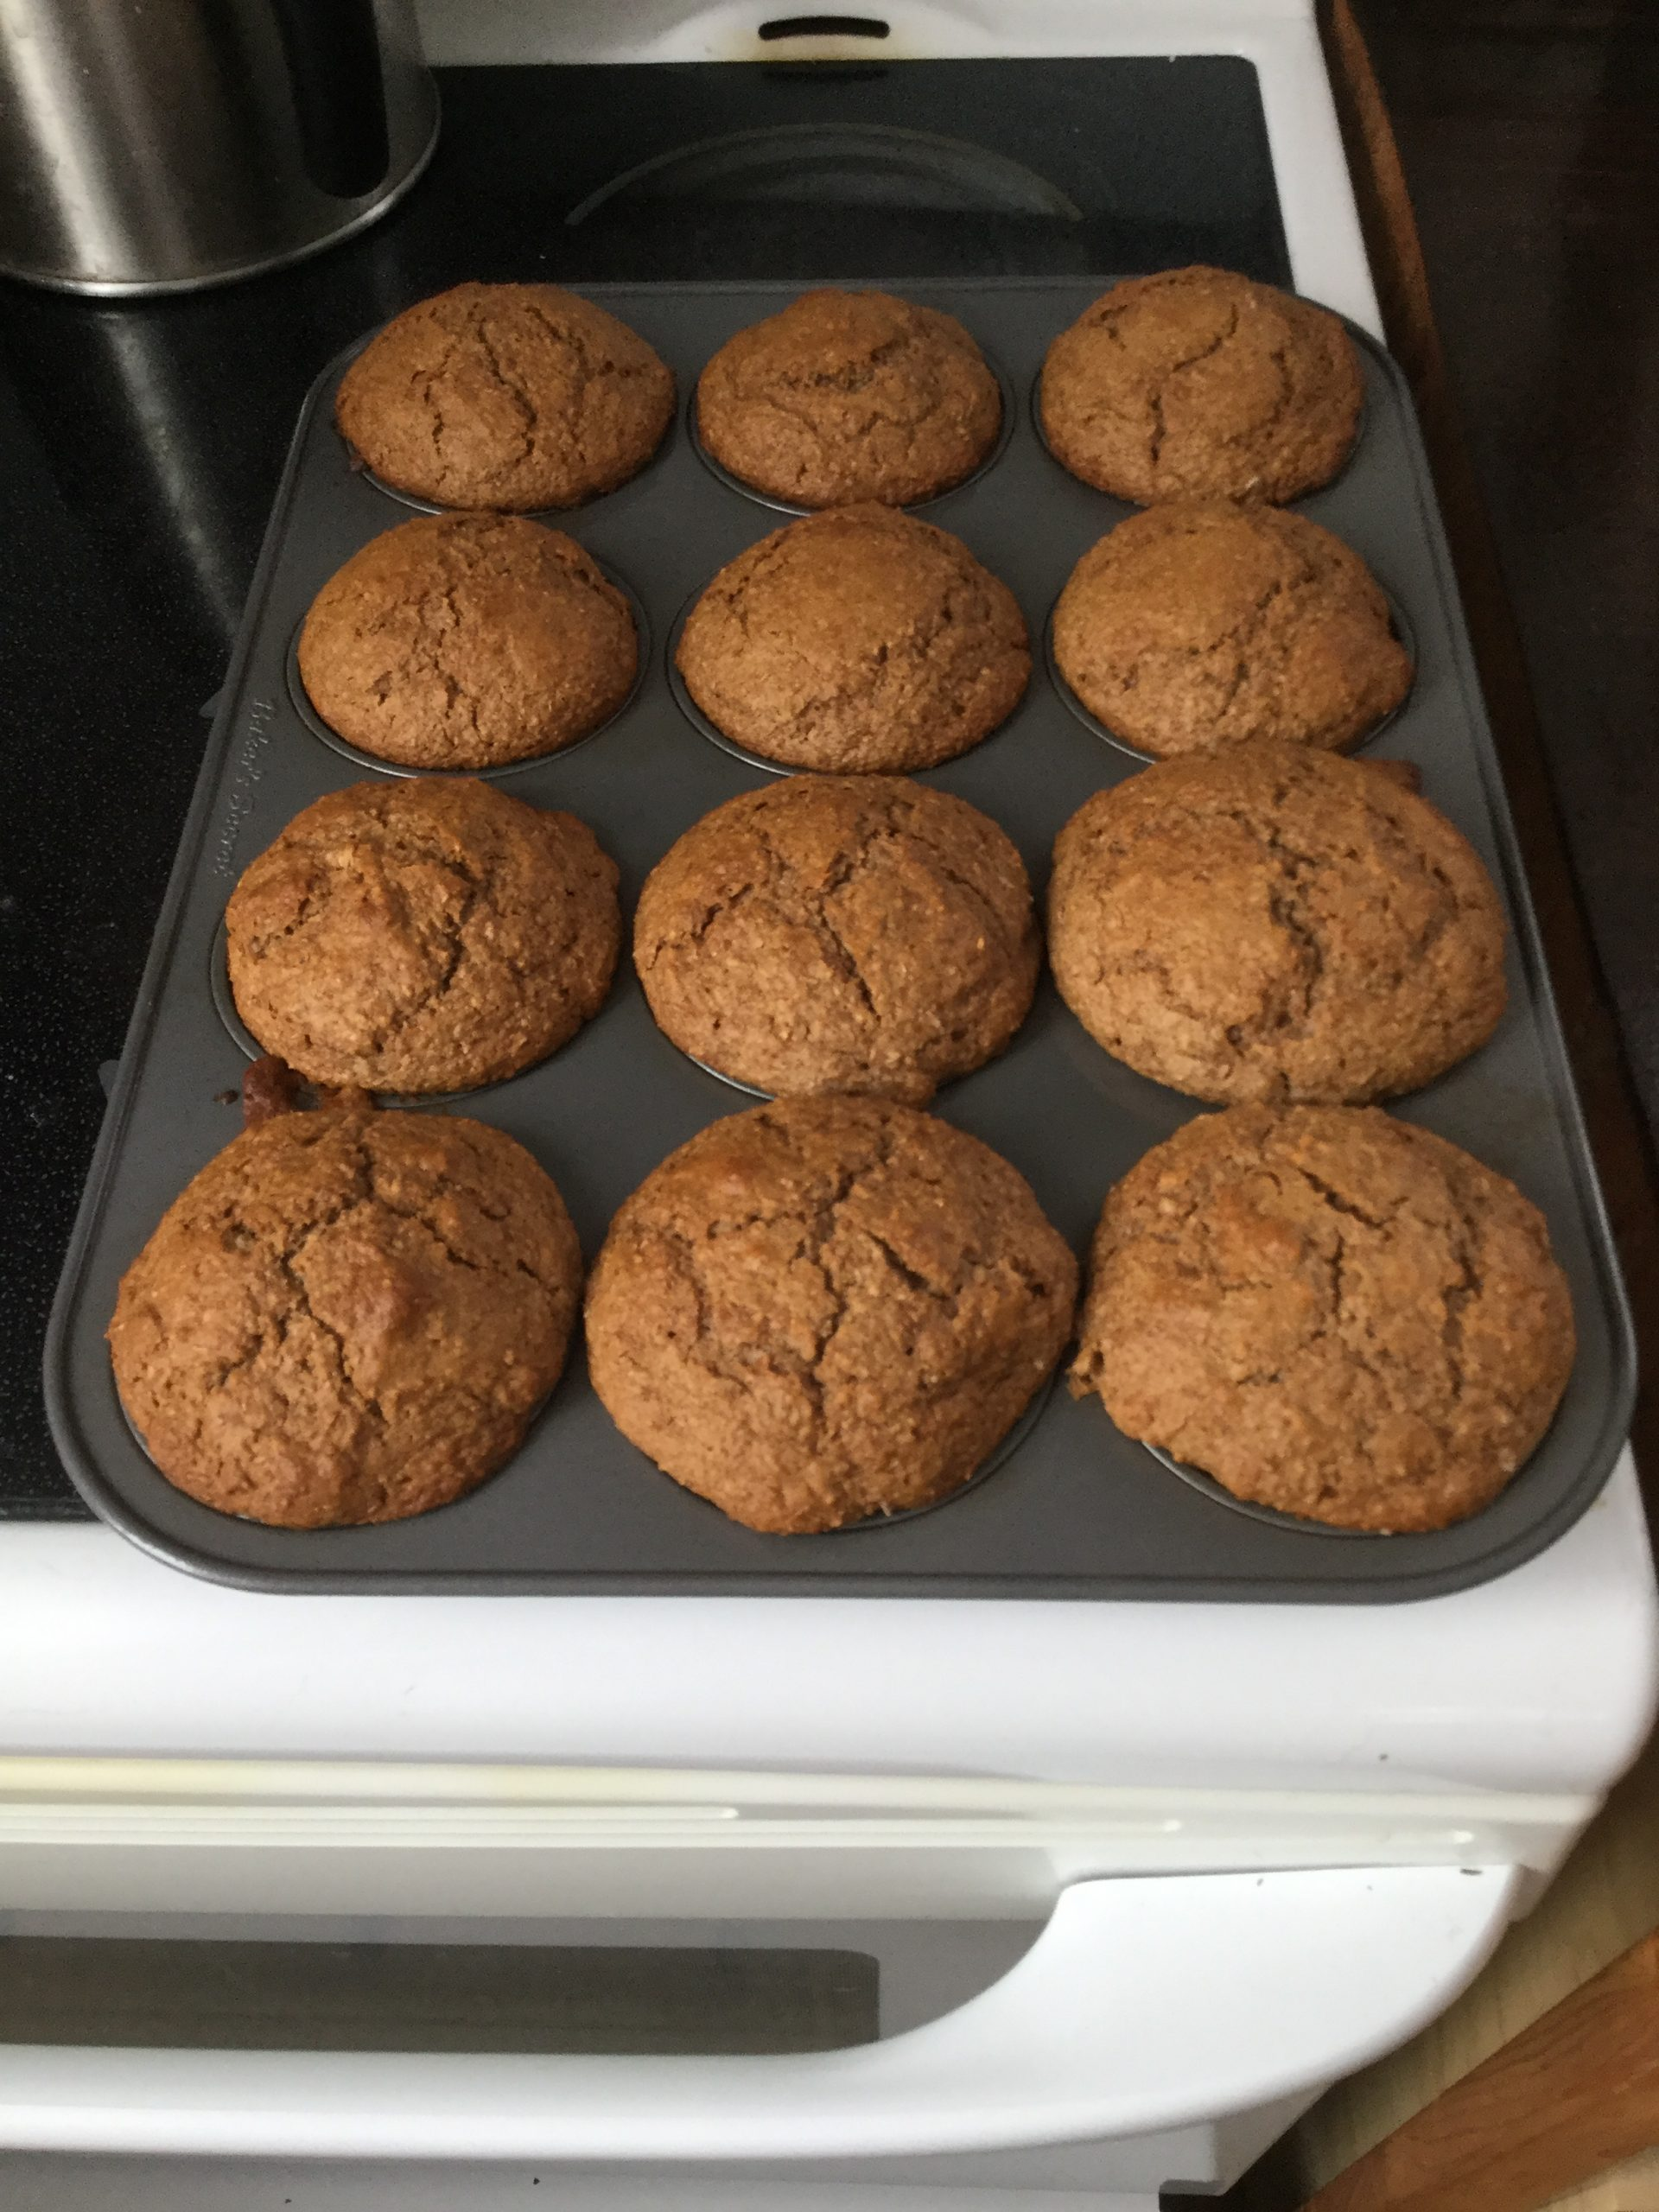 Sourdough Bran Muffins